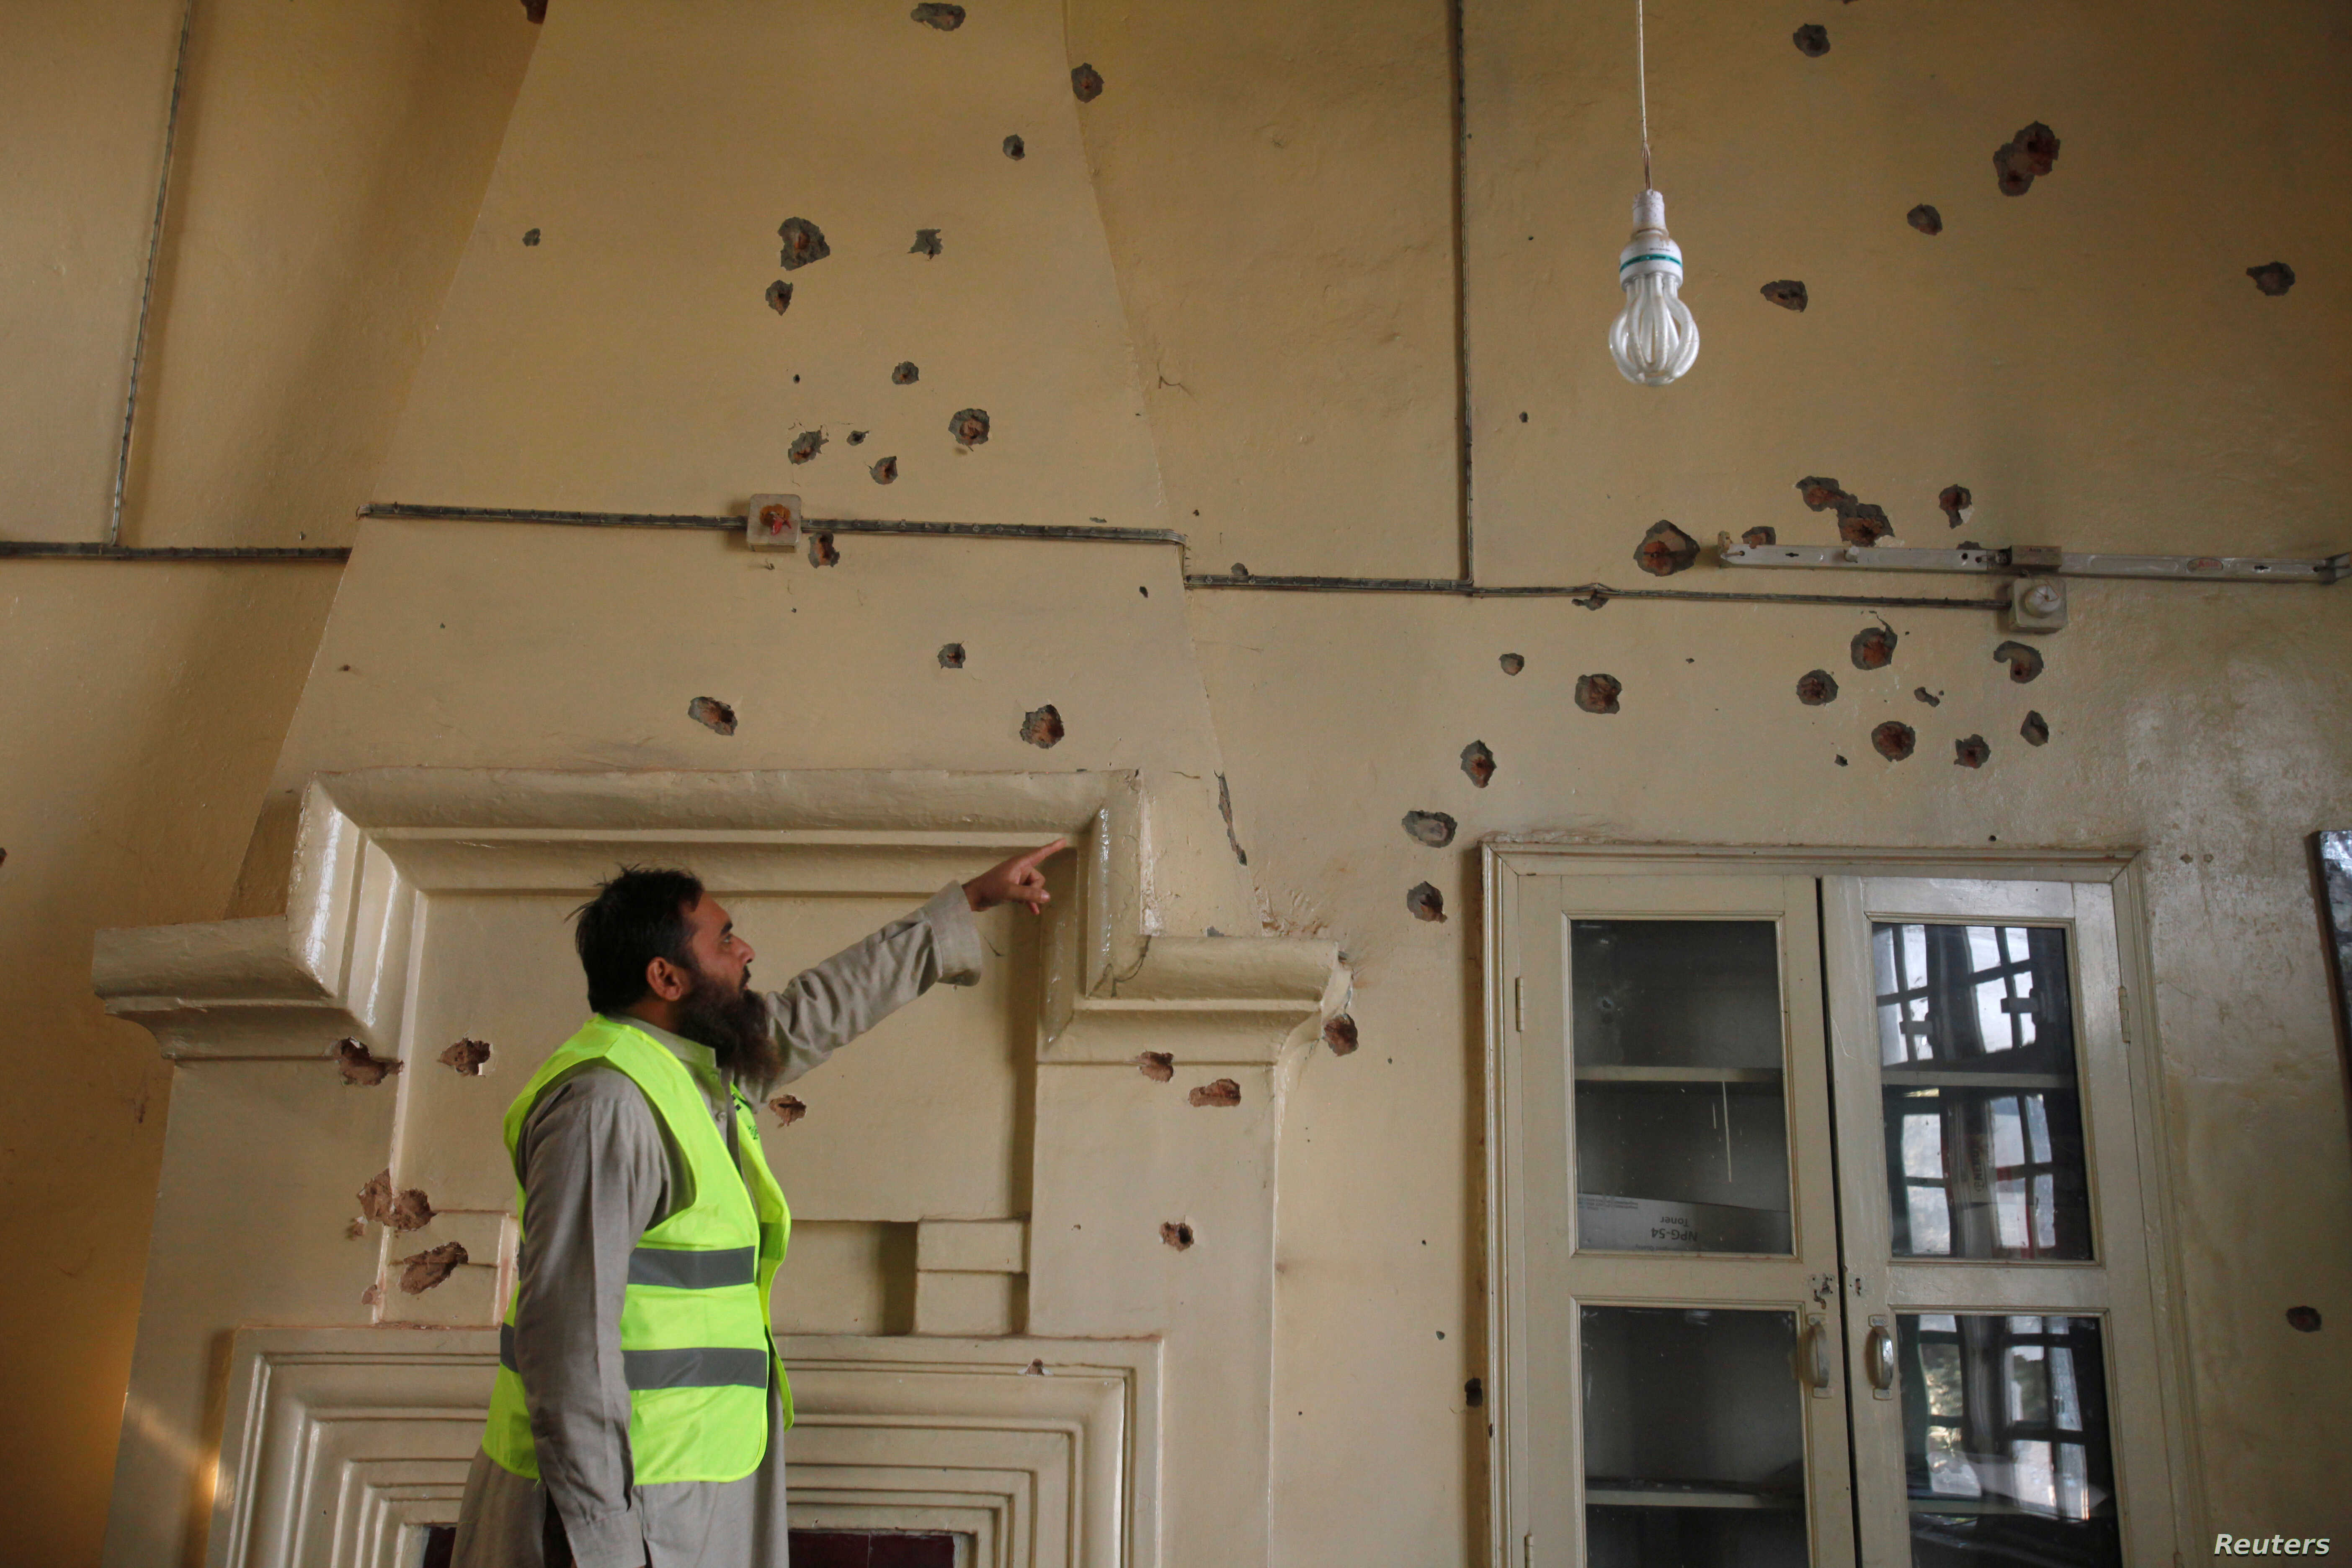 A rescue worker points to bullet holes in the wall of a computer lab after the shooting at Directorate of Agriculture Institute in Peshawar, Pakistan, Dec. 1, 2017.